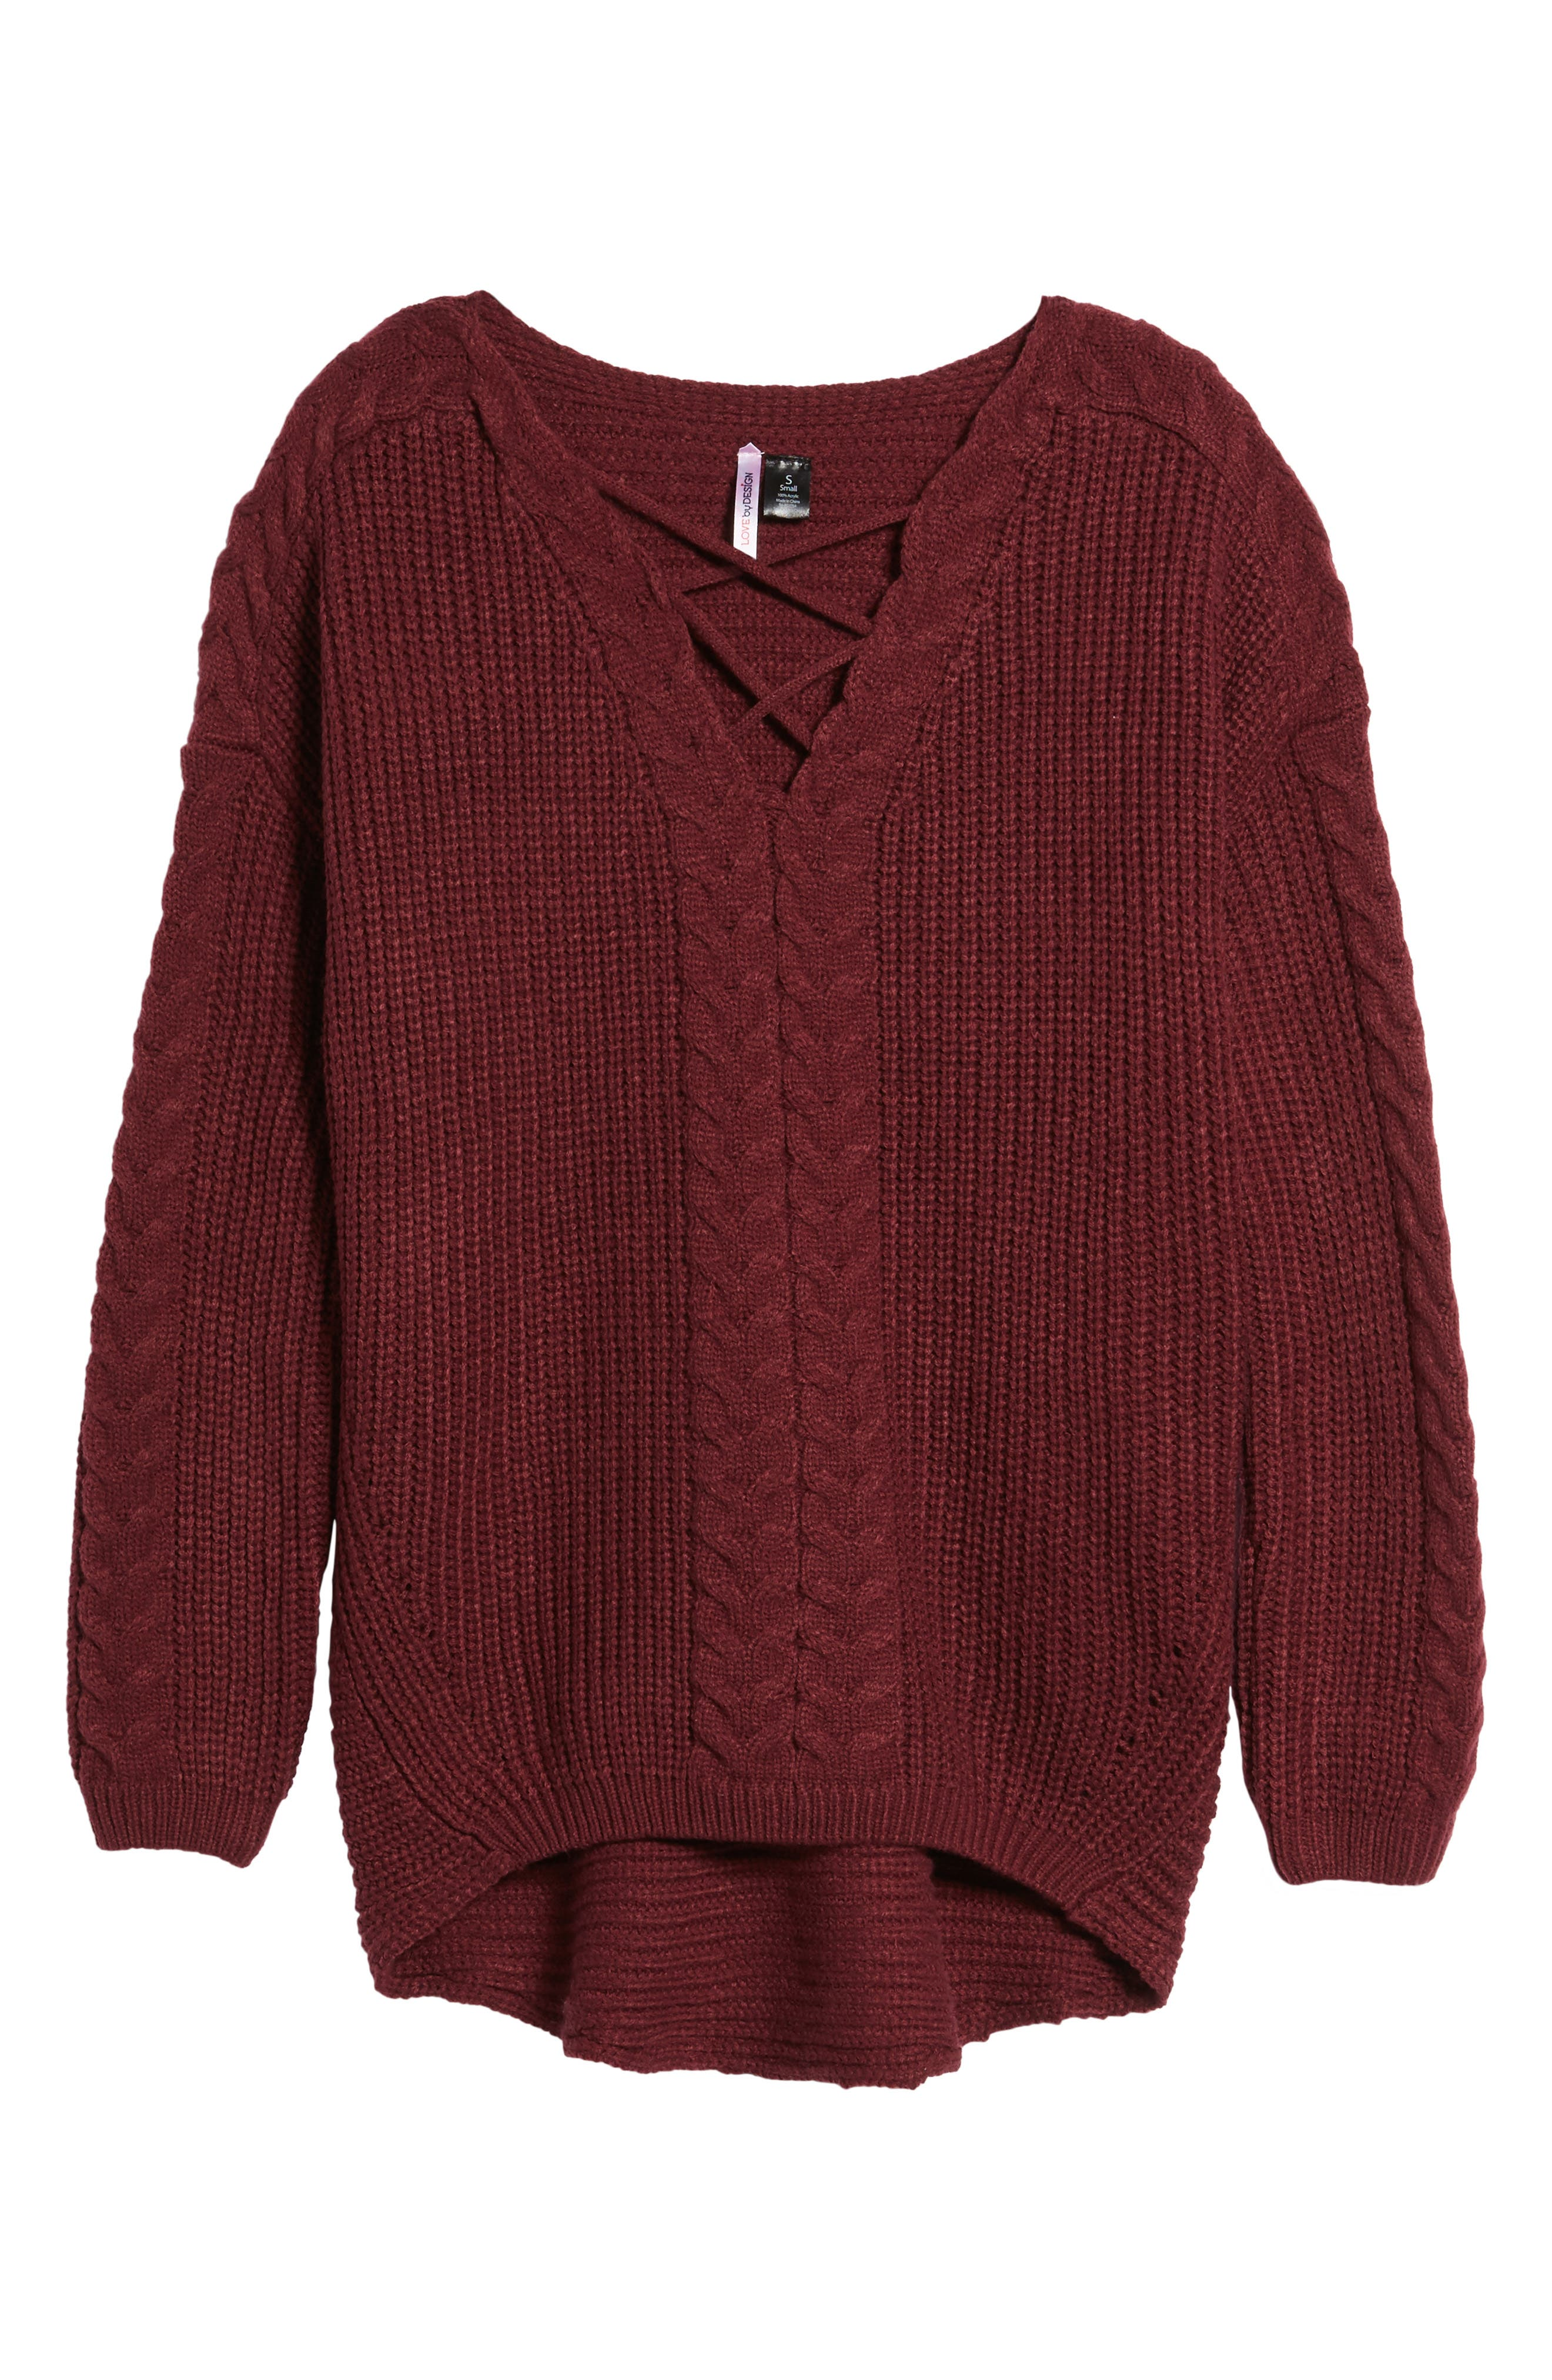 Cross Front Braided Sweater,                             Alternate thumbnail 6, color,                             Zinfandel